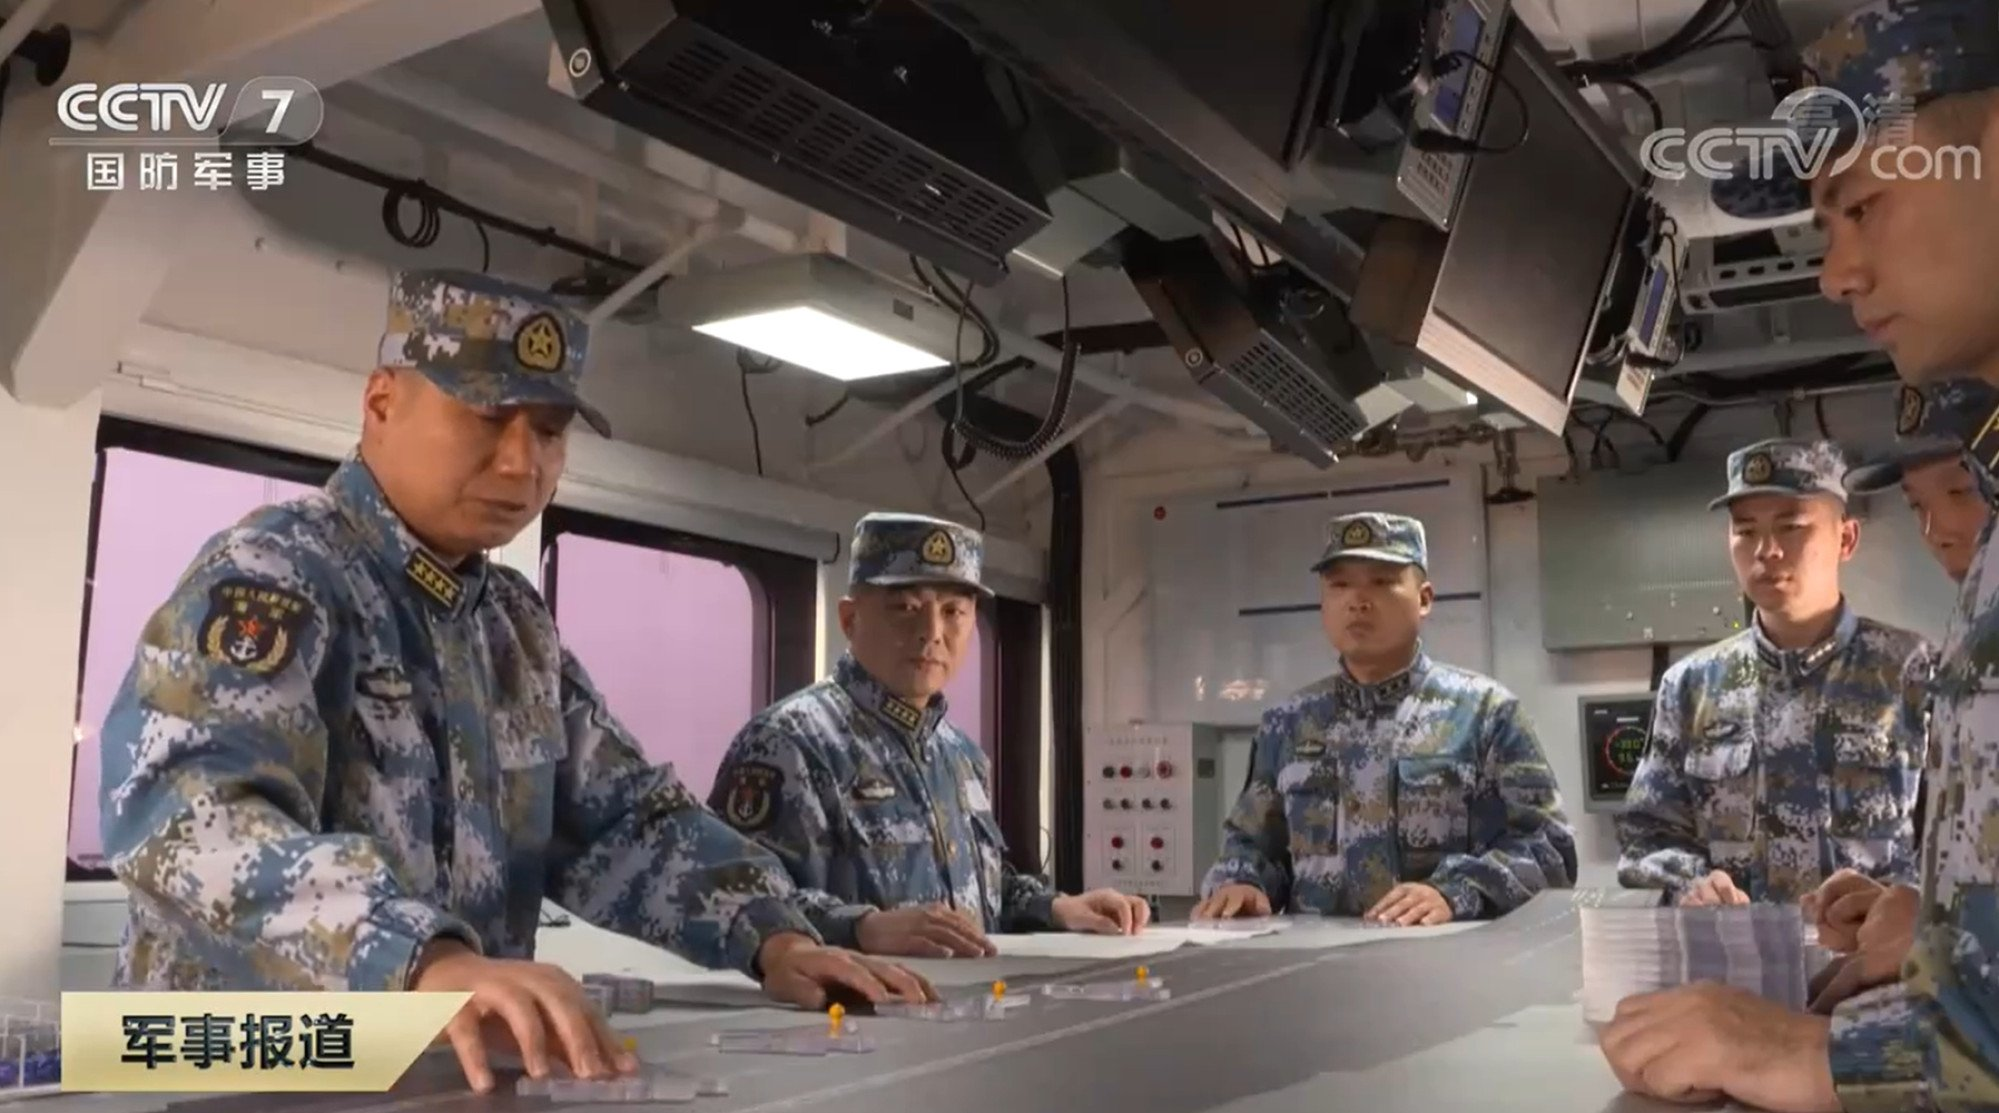 """Lai Yijun, captain of the Shandong (left), and political commissar Song Wenjun (second left) play """"carrier chess"""" using models of J-15 fighters. Photo: CCTV"""